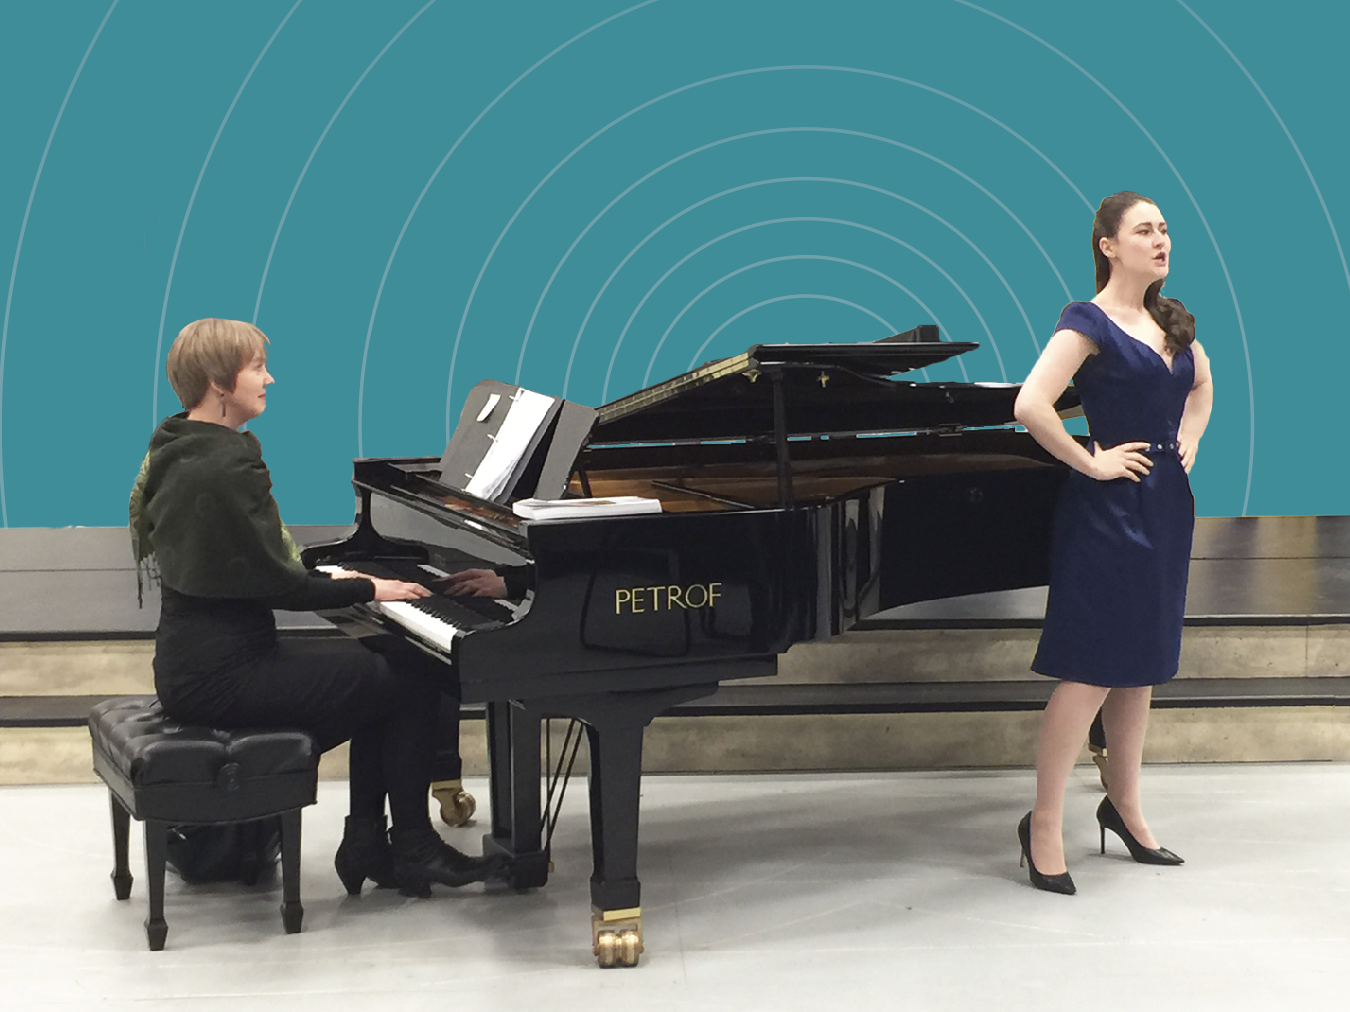 Pianist Leanne Regehr and soprano Caitlin Wood with Edmonton Opera's new Petrof grand piano.